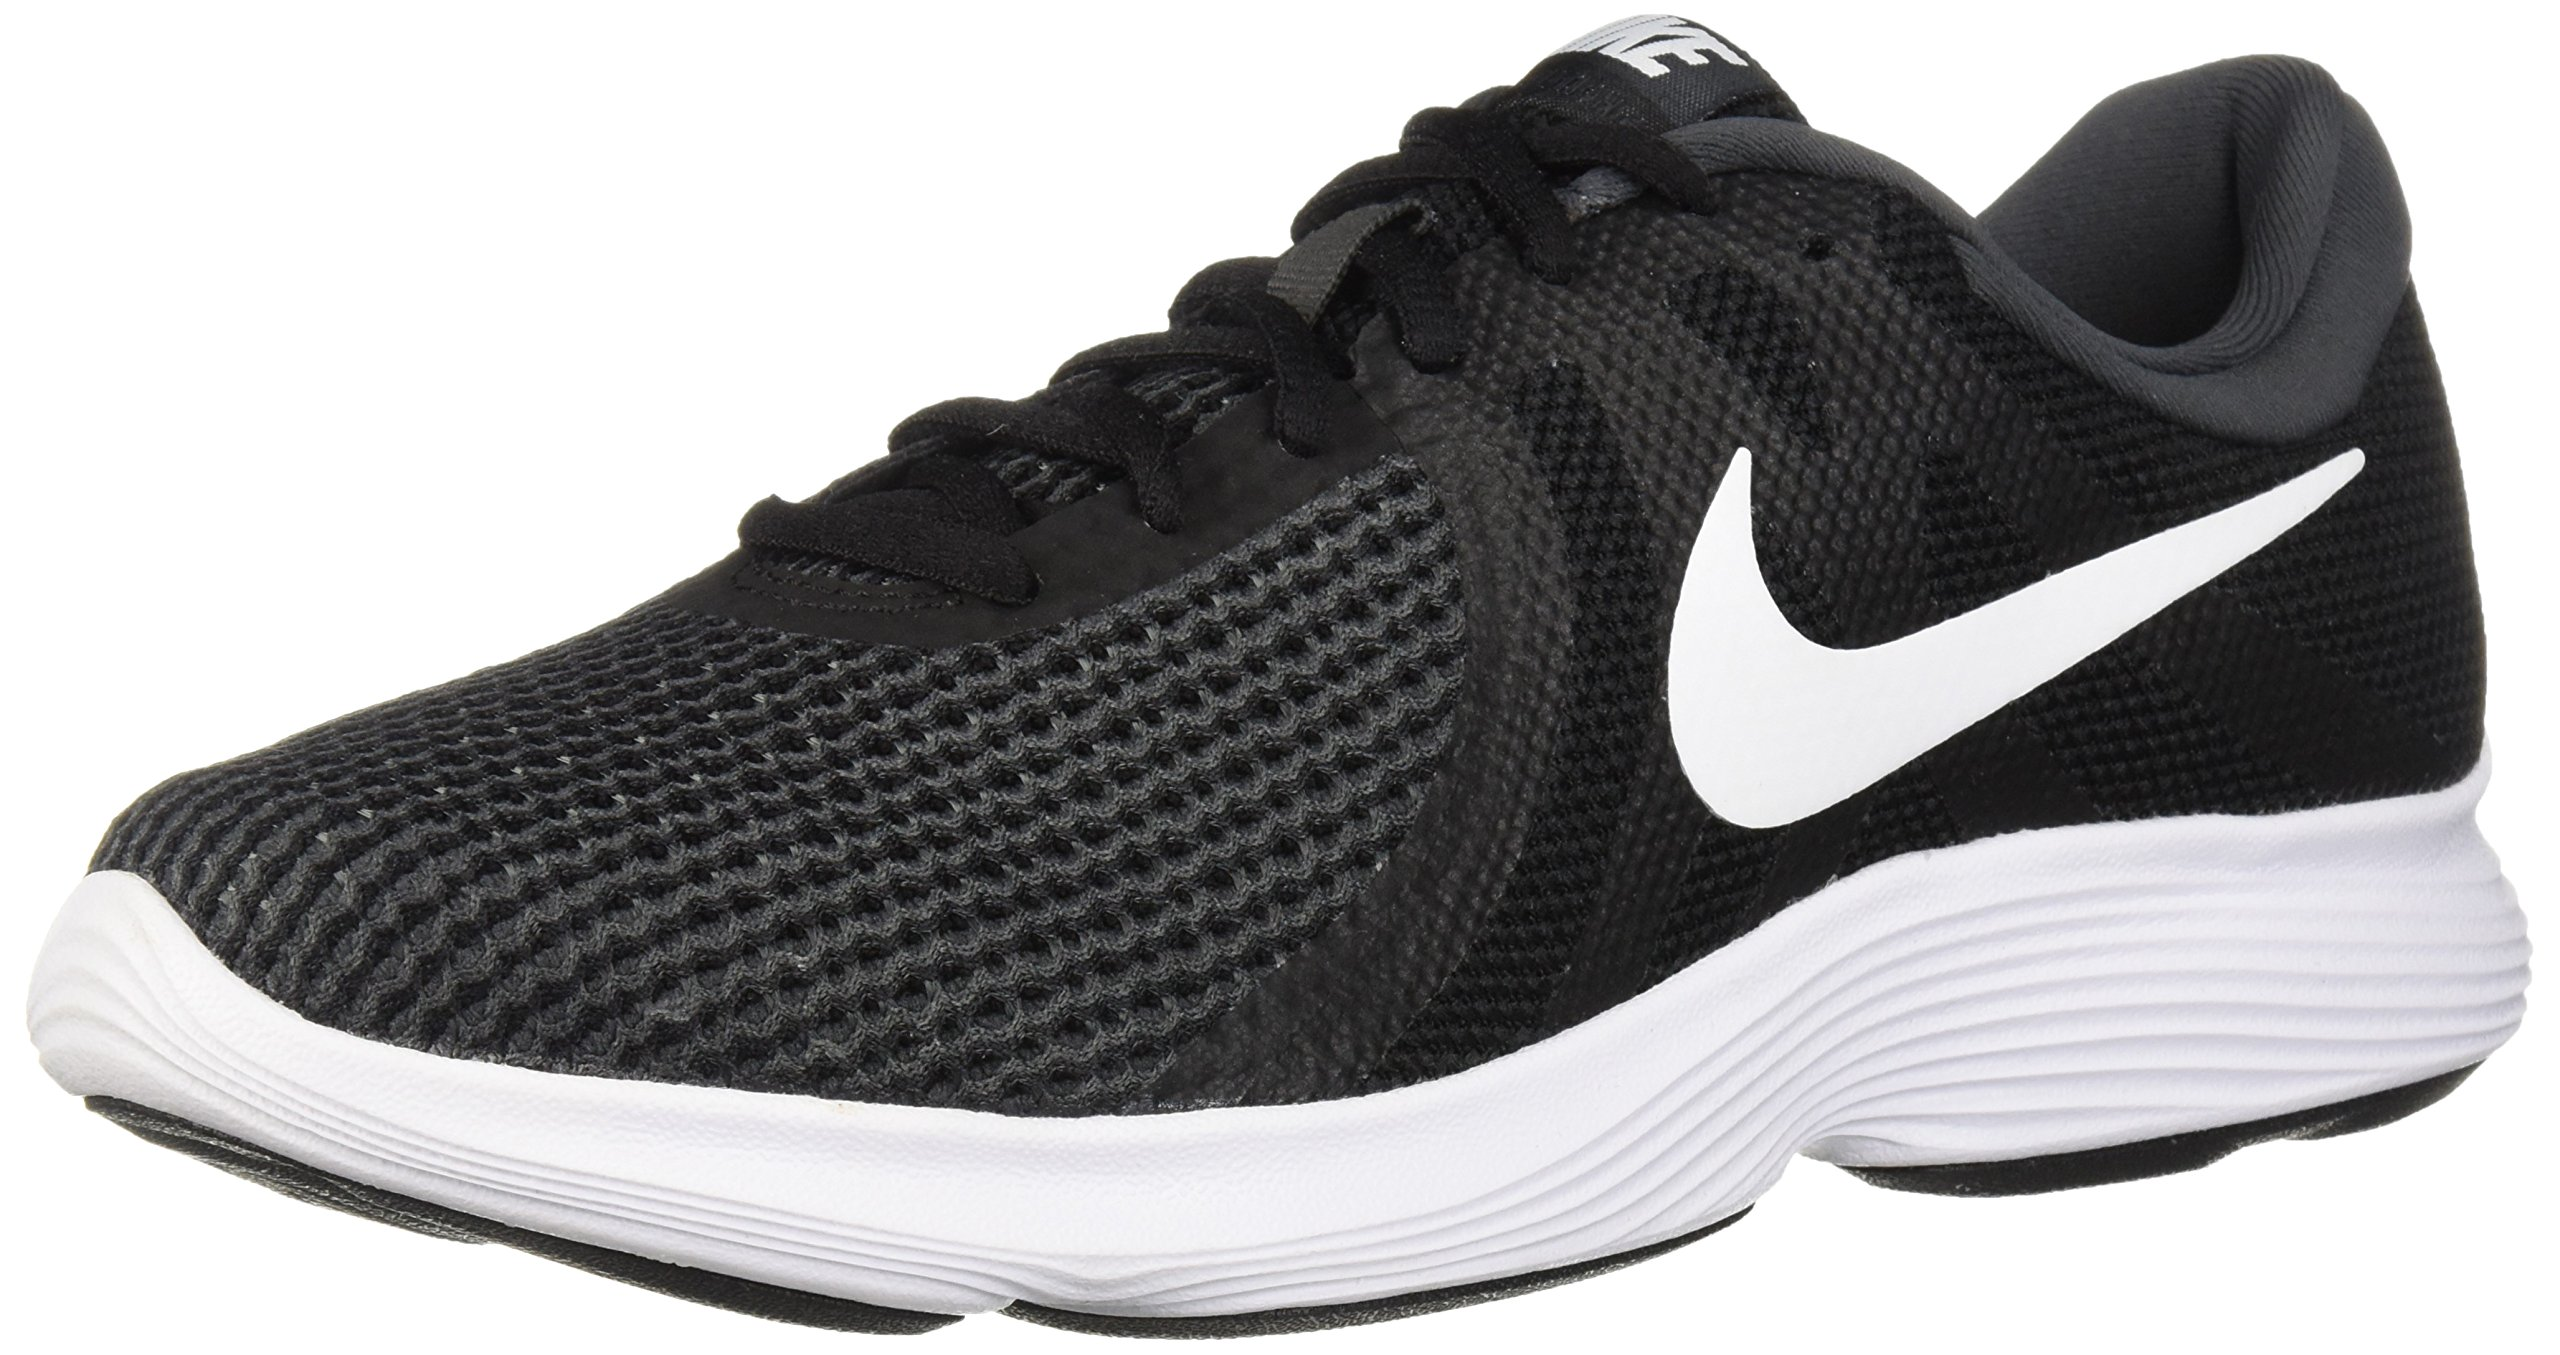 Nike Men's Revolution 4 Running Shoe, Black/White-Anthracite, 8 Regular US by Nike (Image #1)